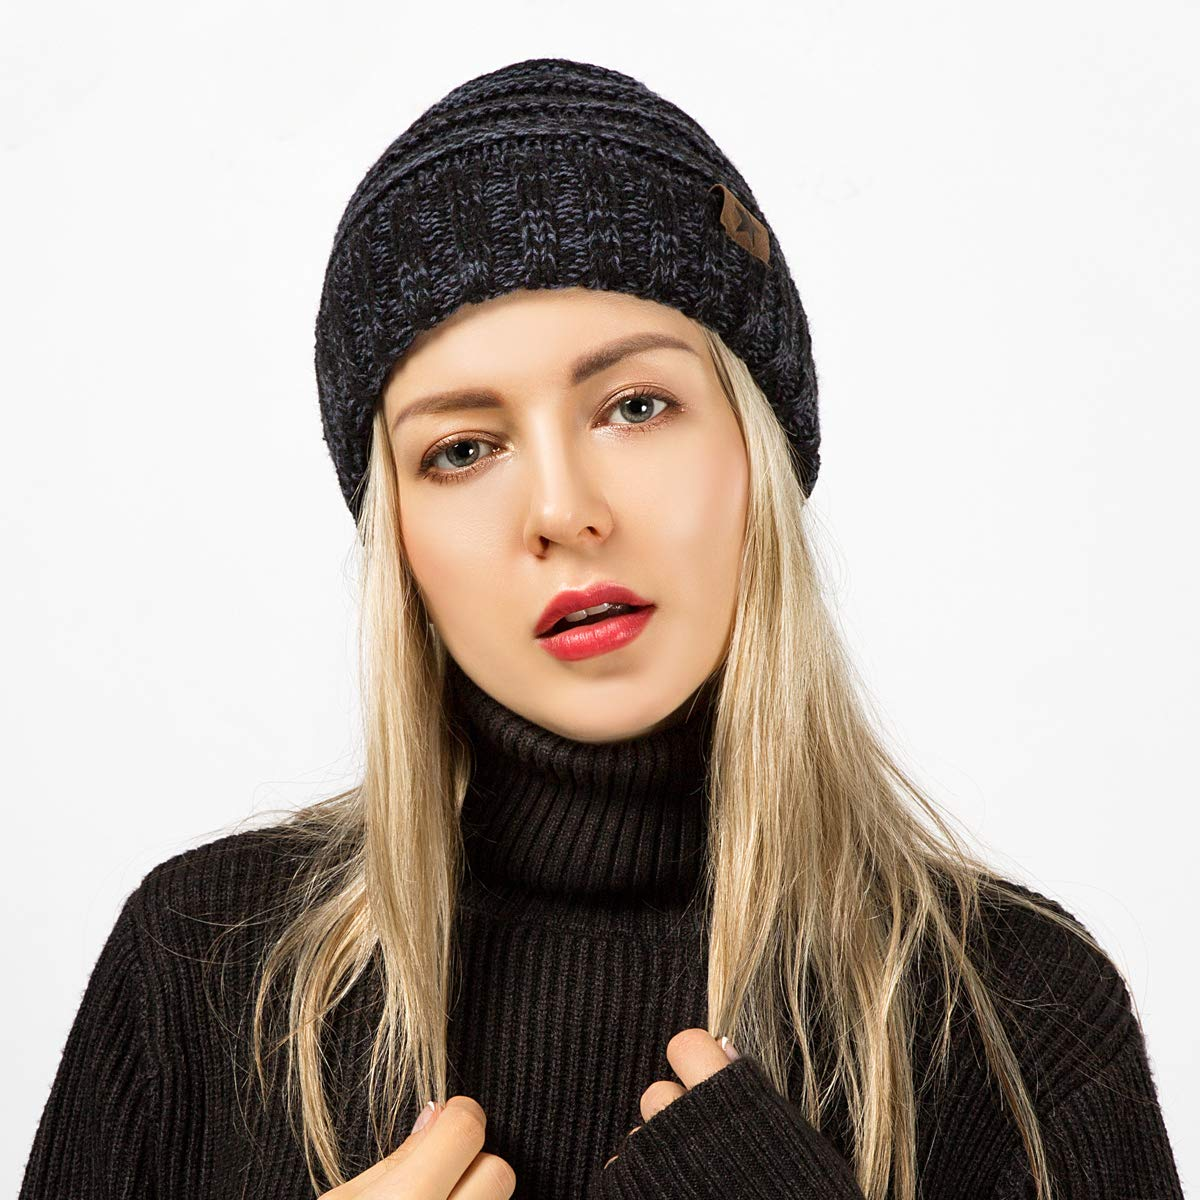 Wish Club Beanie Hat Women Warm Soft Cable Knit Thick Slouchy Caps Men Winter Unisex Beanie Skully Hats